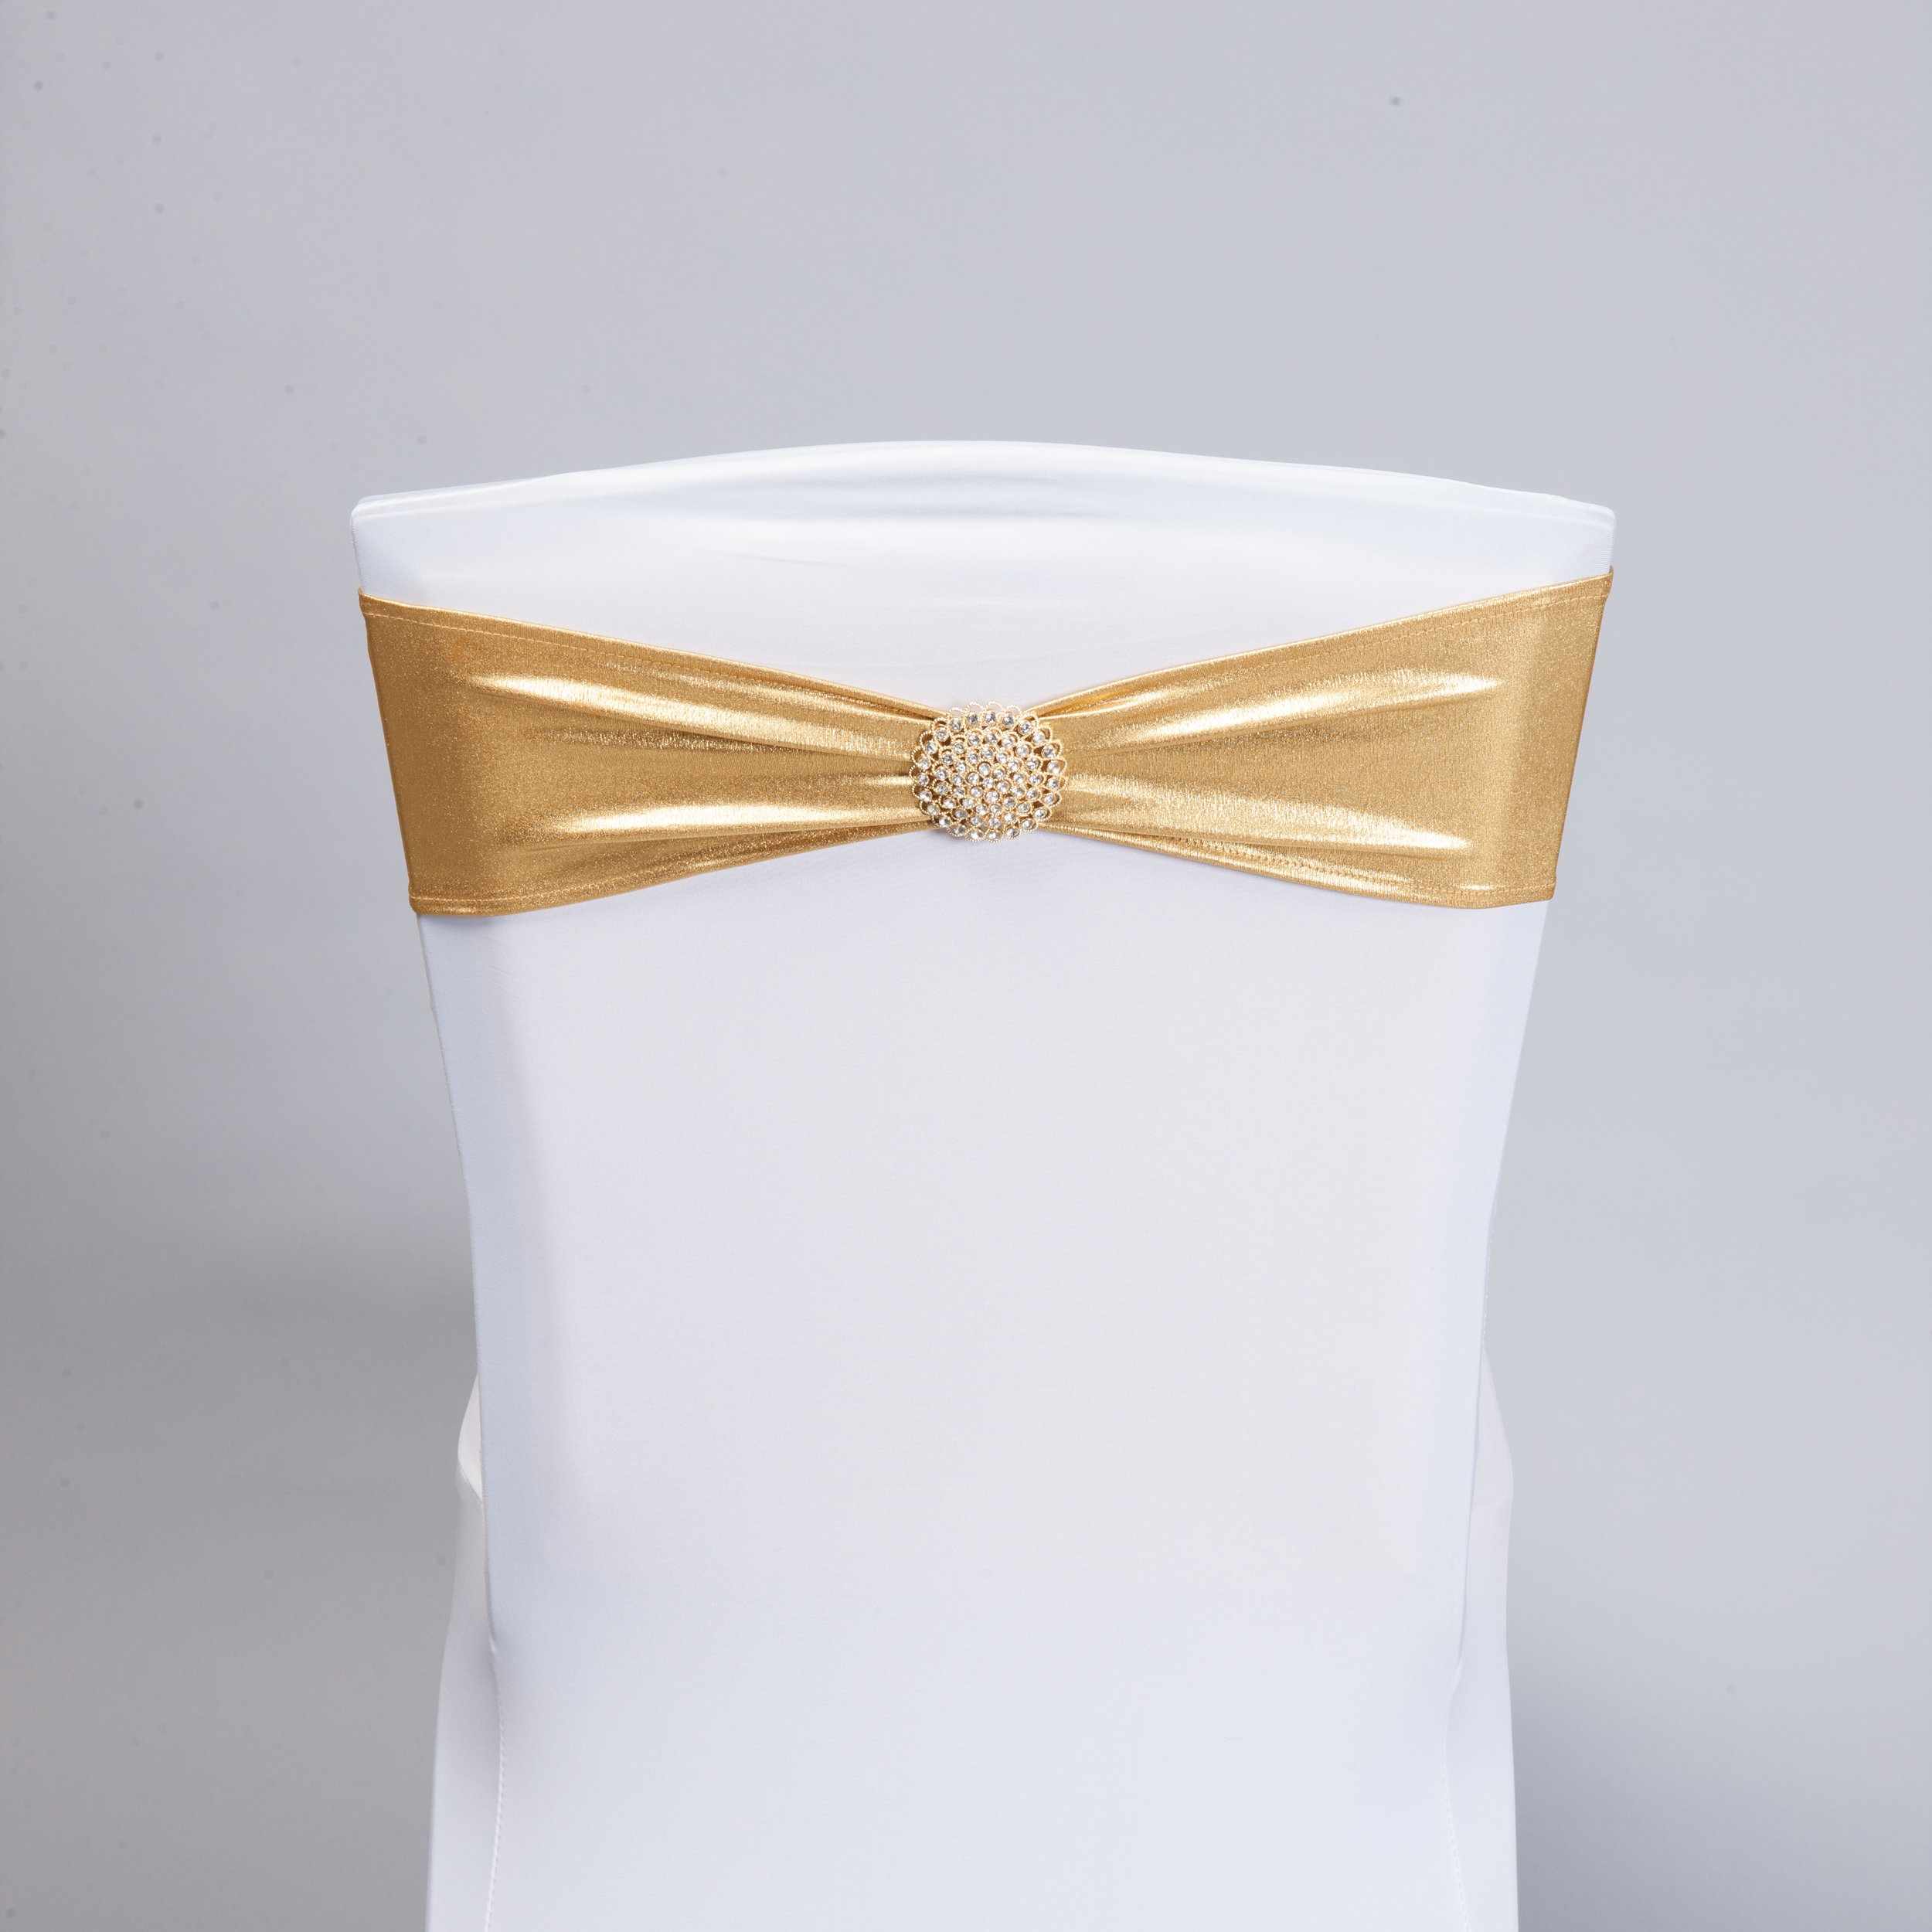 Metallic Gold Spandex Band with Gold Bling Pin